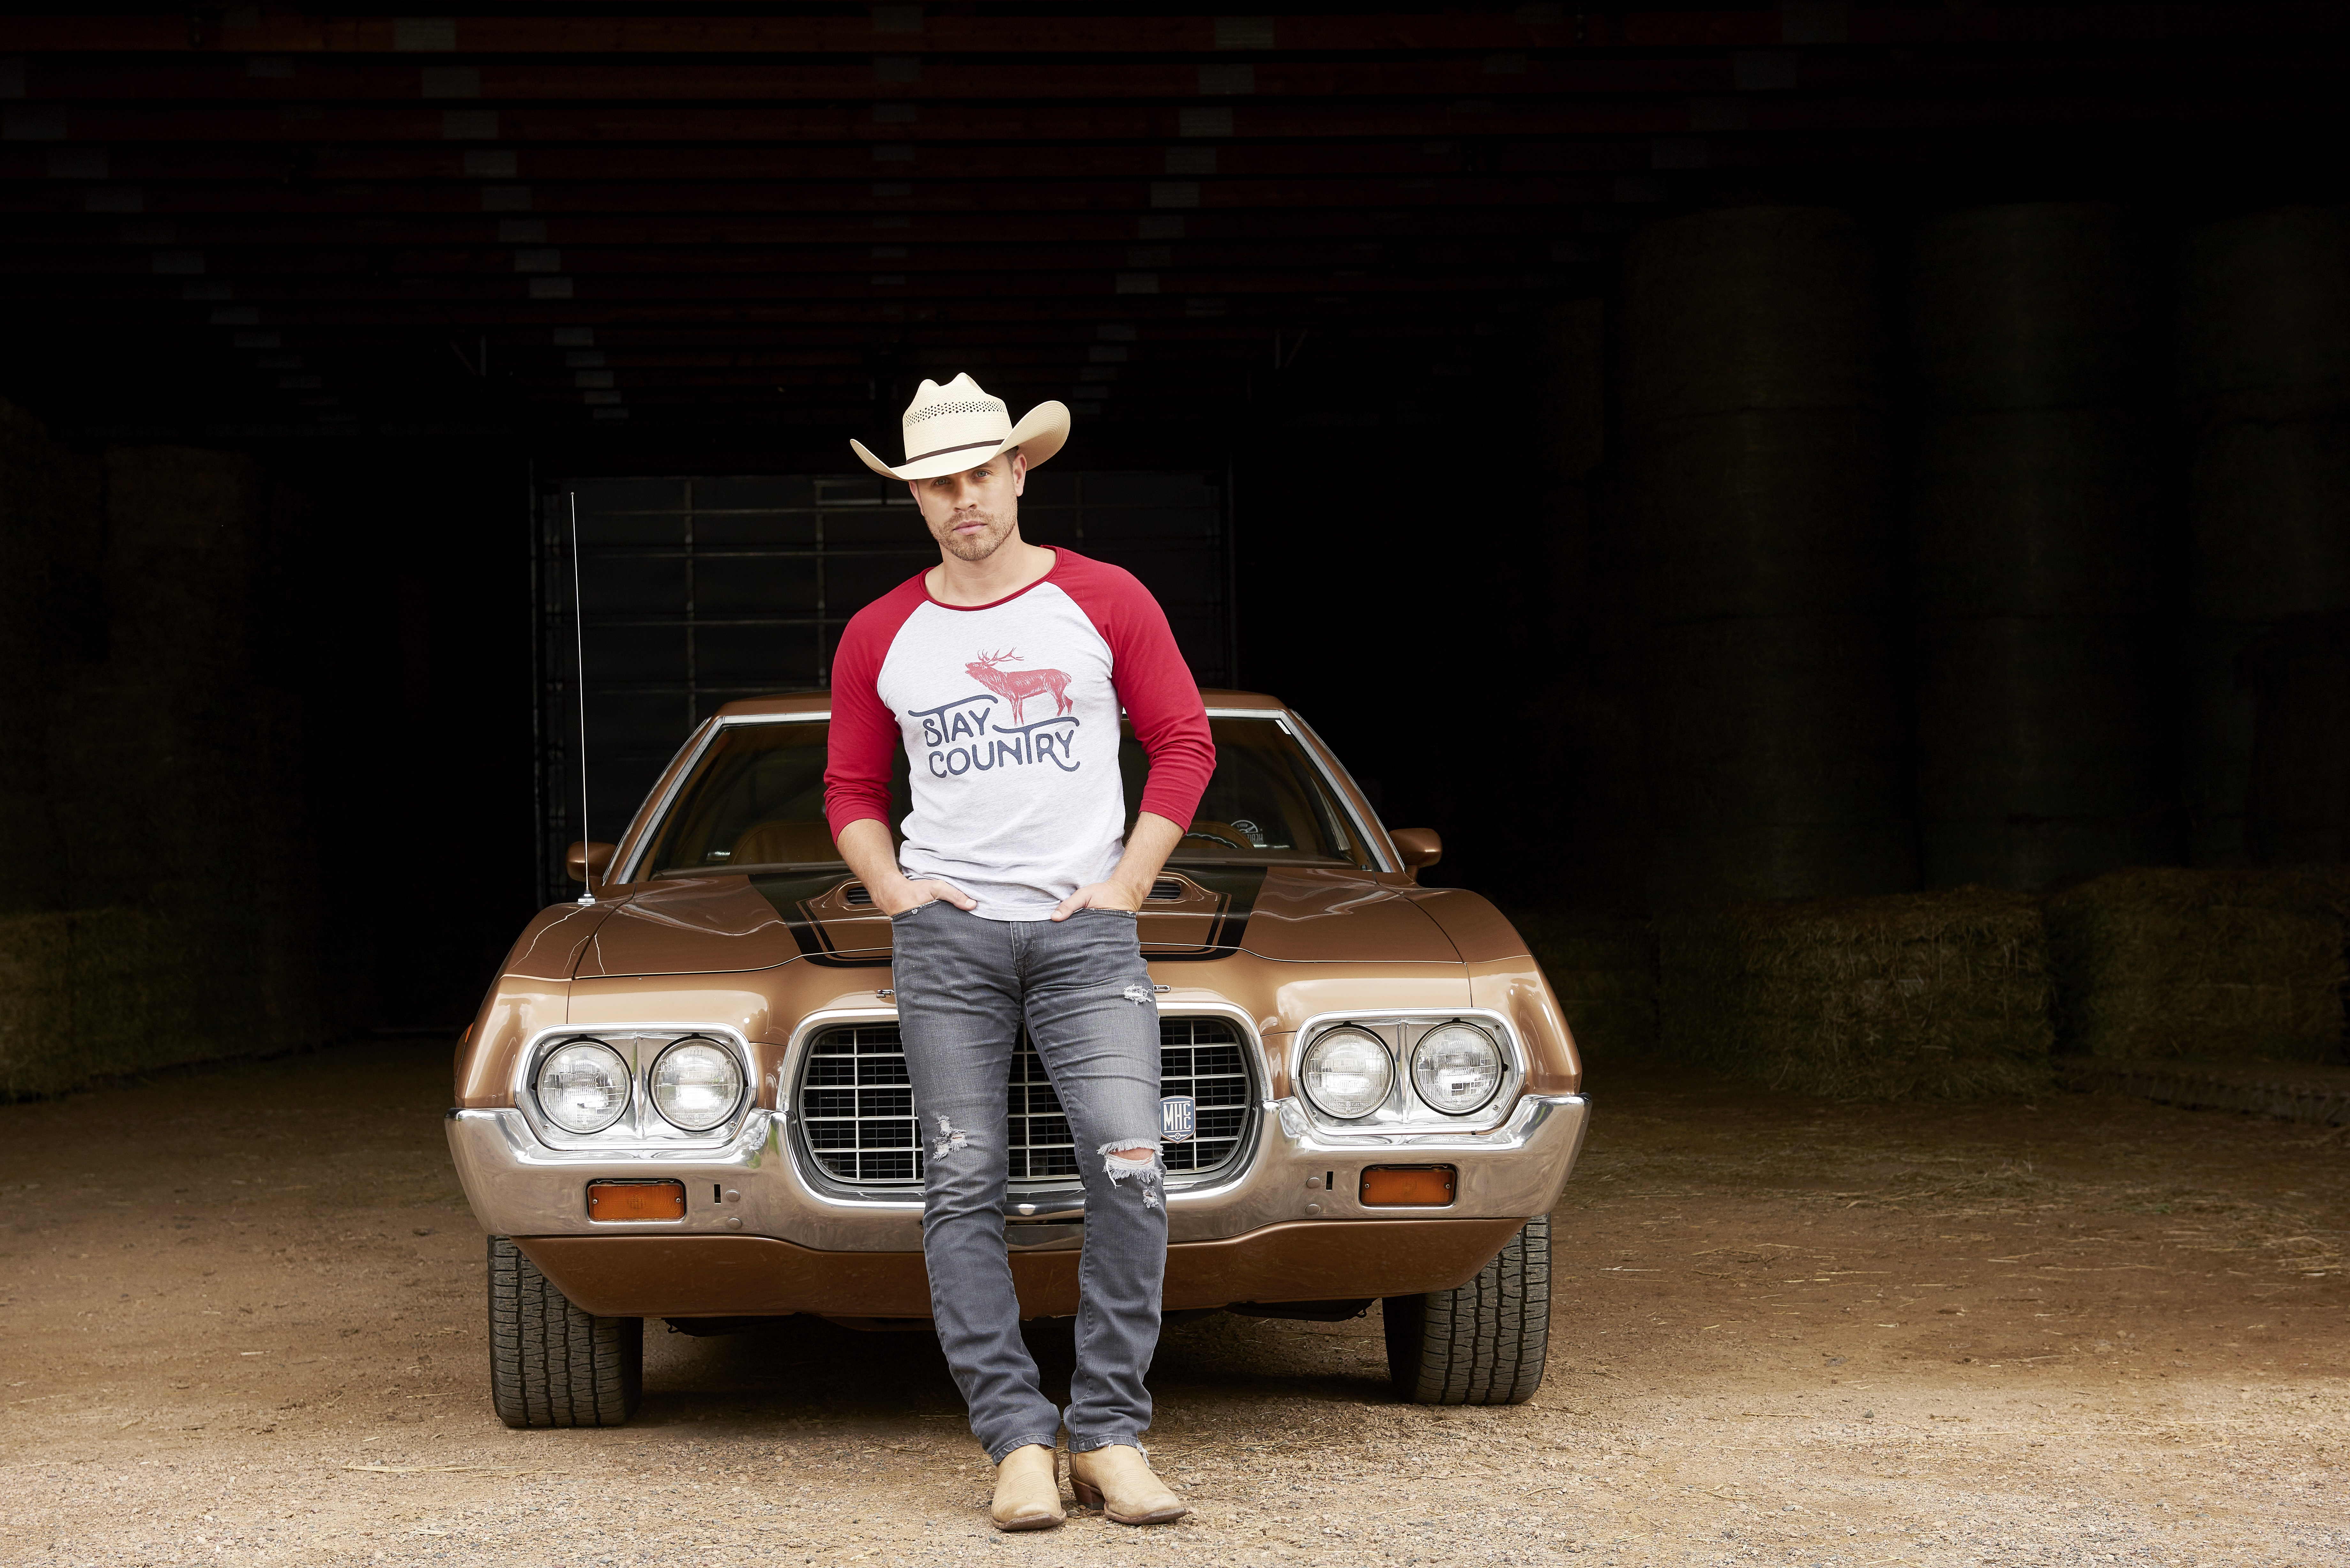 WIN a Shirt from Dustin Lynch's 'Stay Country' Collection